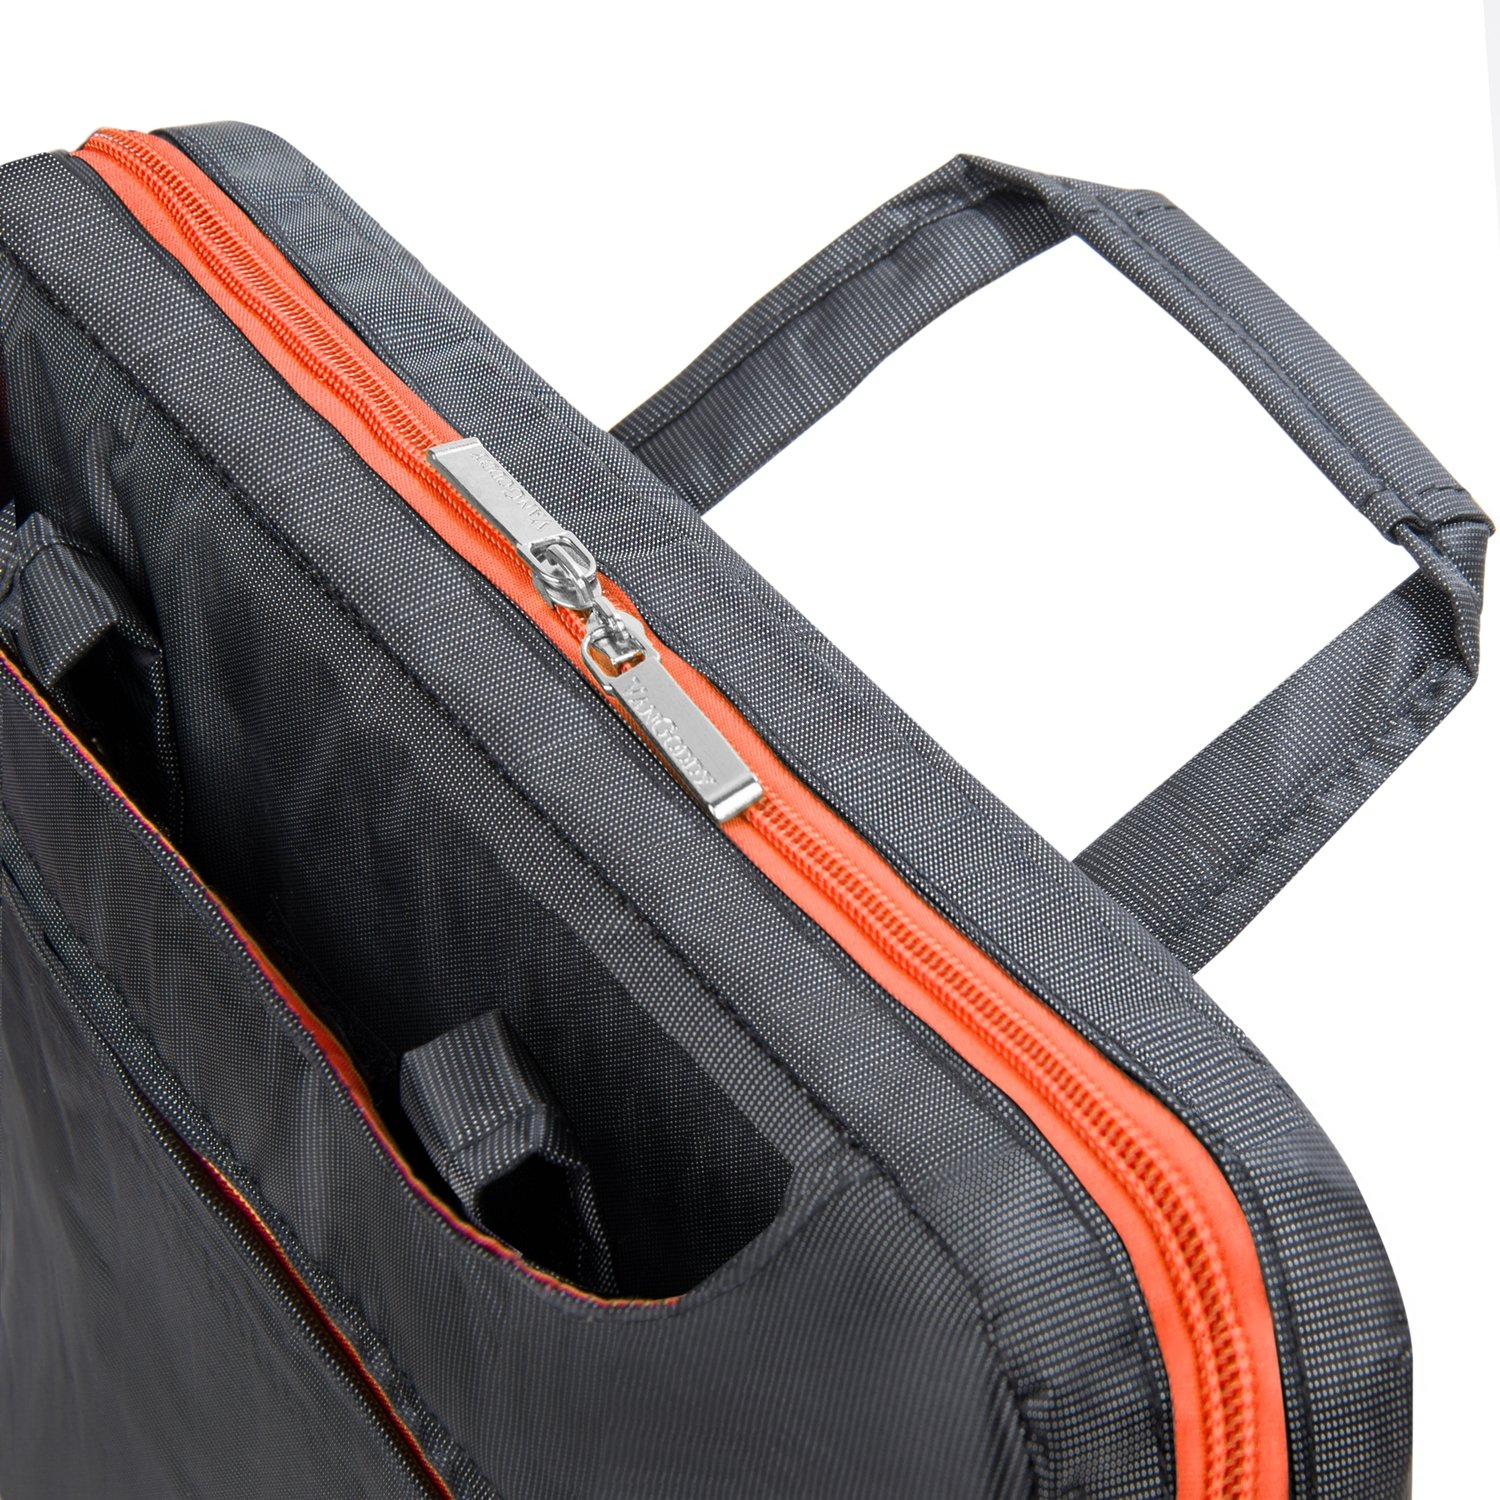 VanGoddy NineO 15 3-in-1 Water Resistant Nylon Messenger Shoulder Bag Briefcase (Gray/Orange) for Dell Inspiron 14 15 / Latitude 14 15 / Precision Mobile Workstation/XPS 15 Series 14'' 15.6'' Laptop by Vangoddy (Image #3)